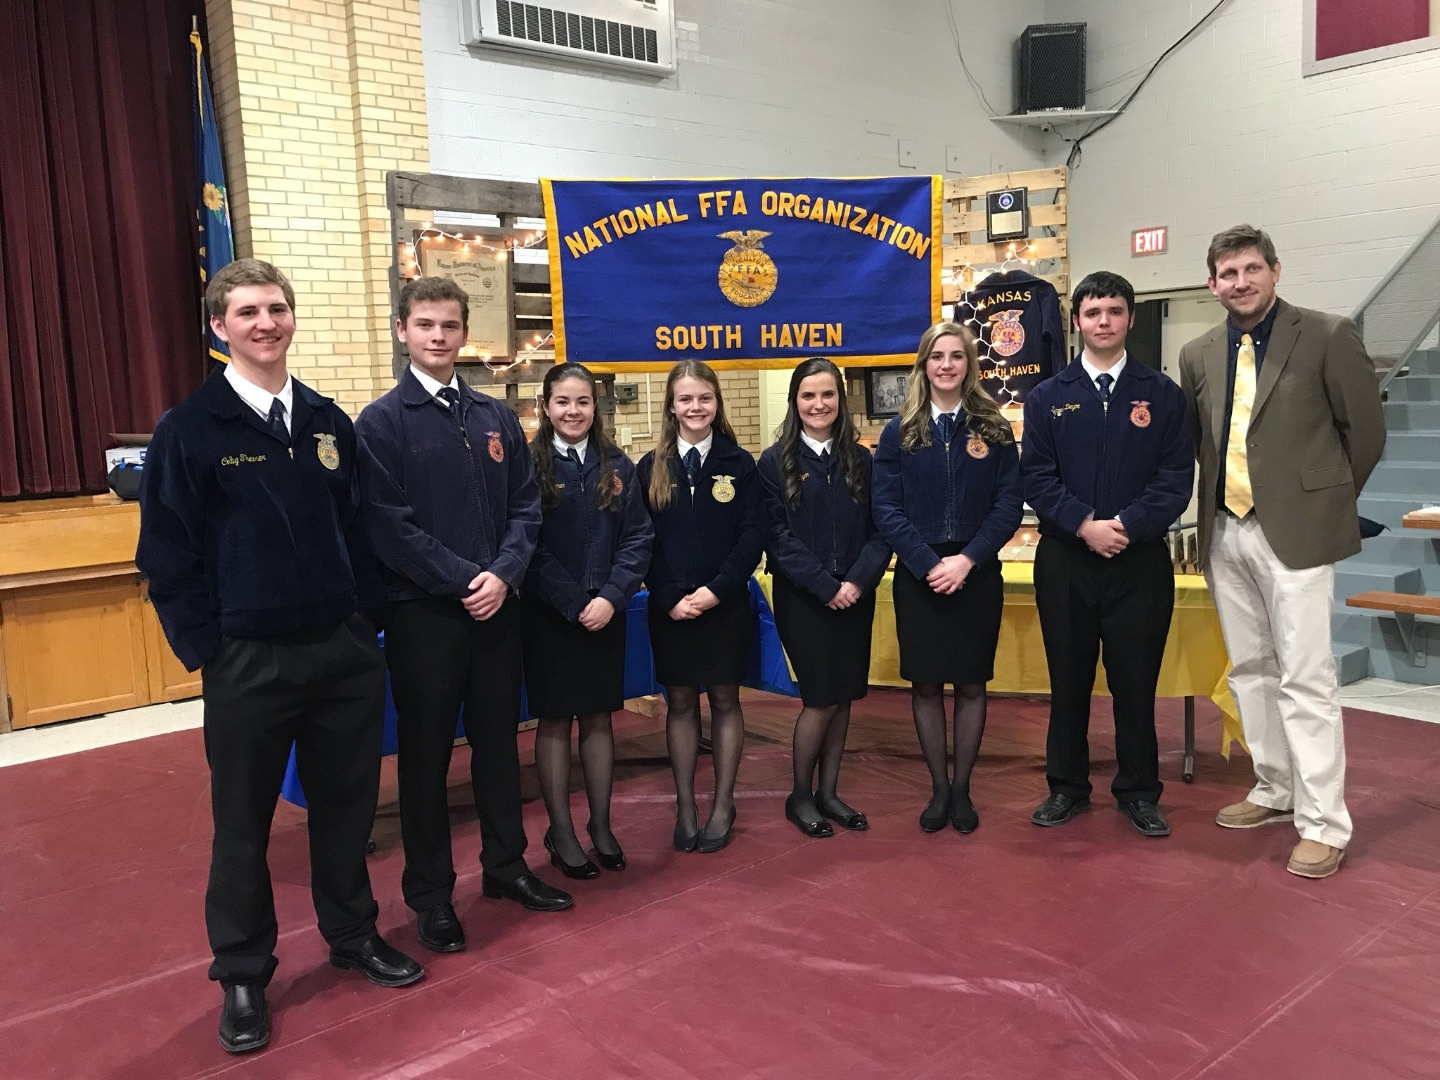 The 2018-19 South Haven FFA Officers